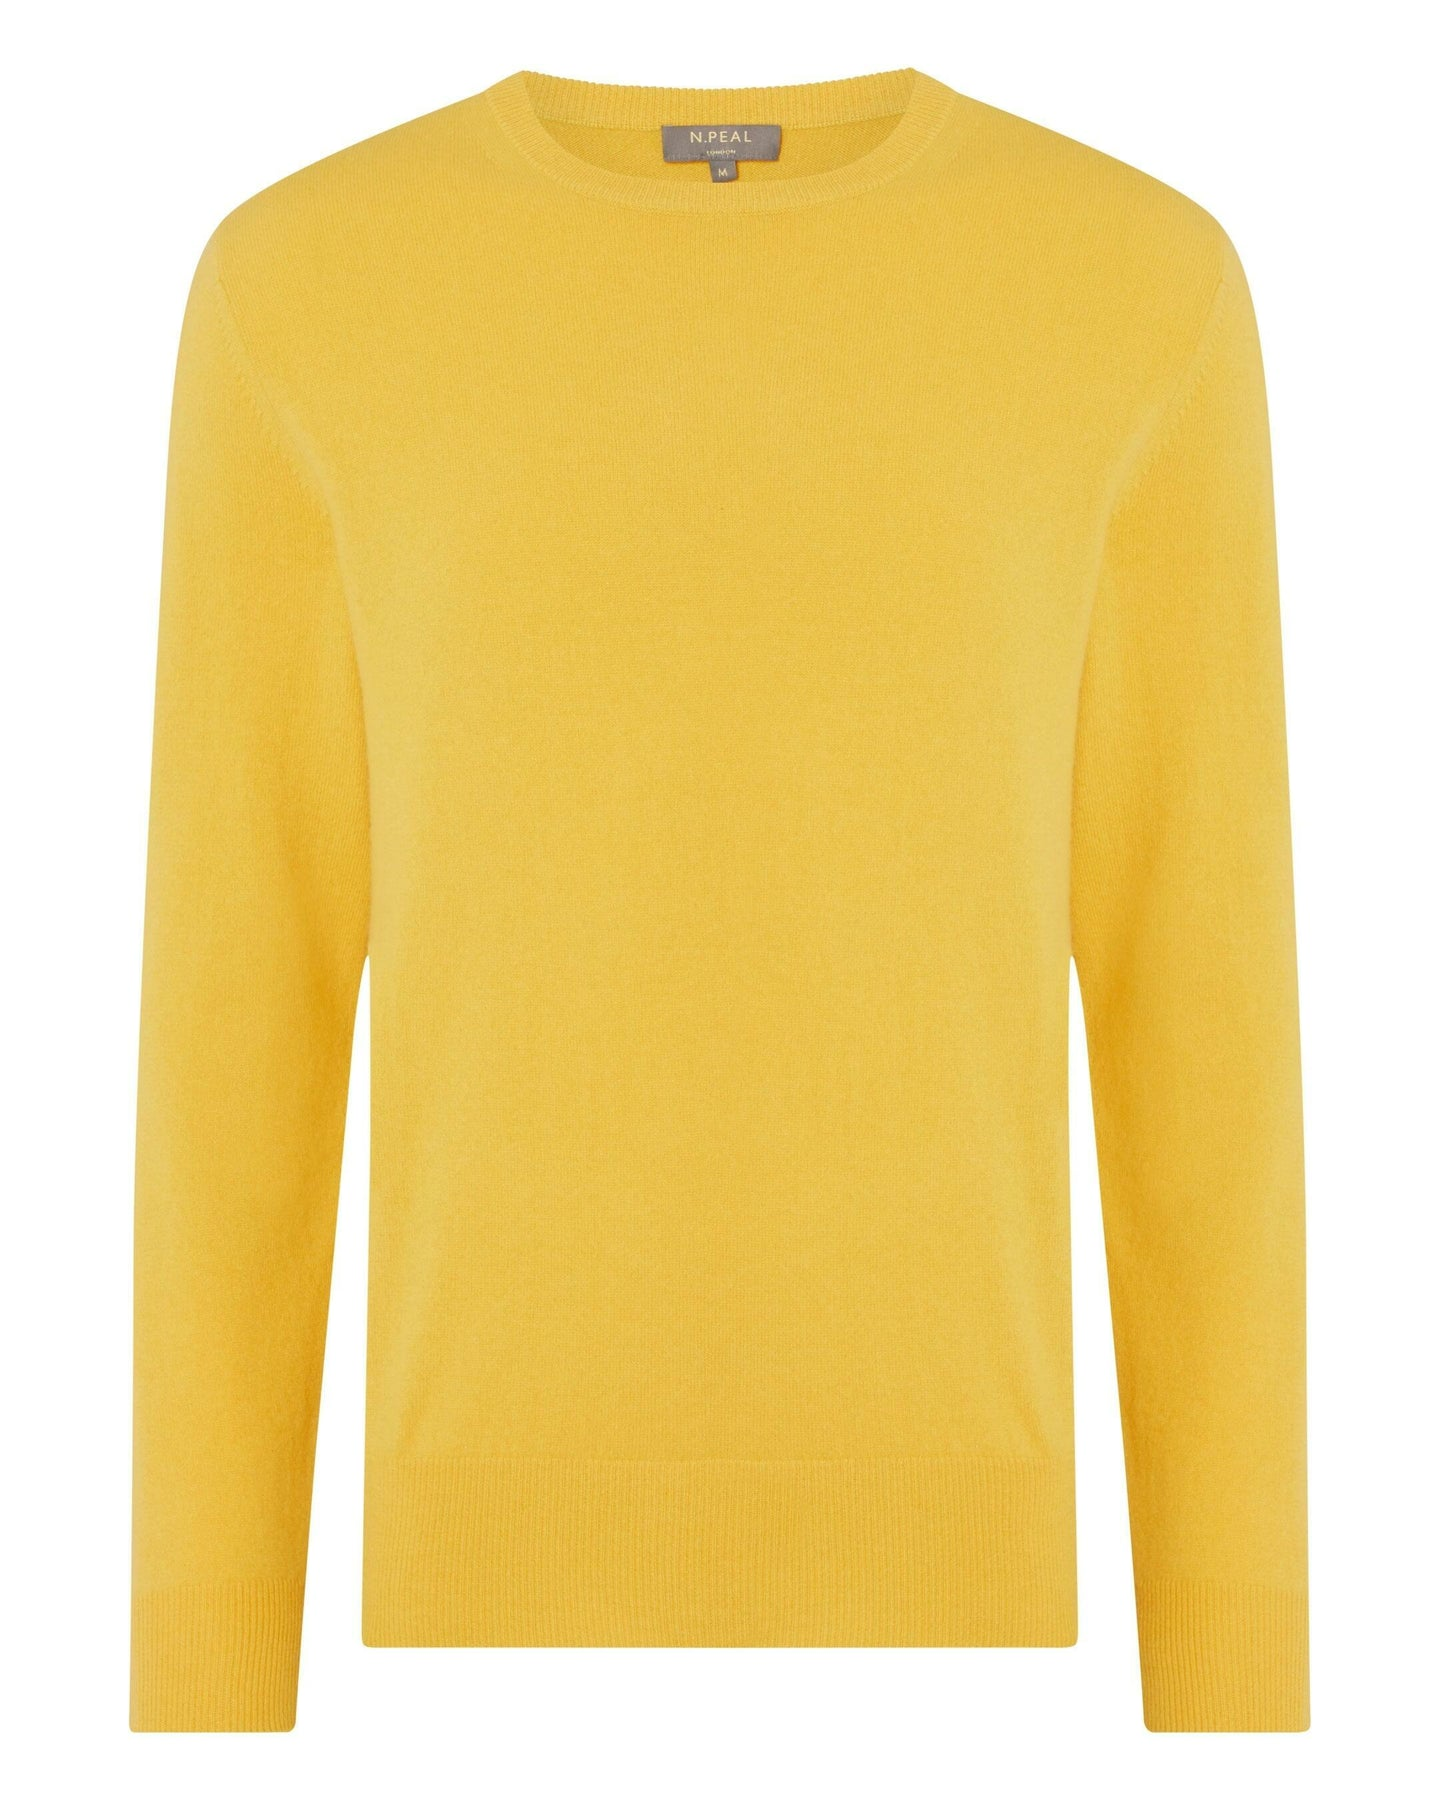 The Oxford Round Neck Cashmere Sweater Rattan Yellow 2